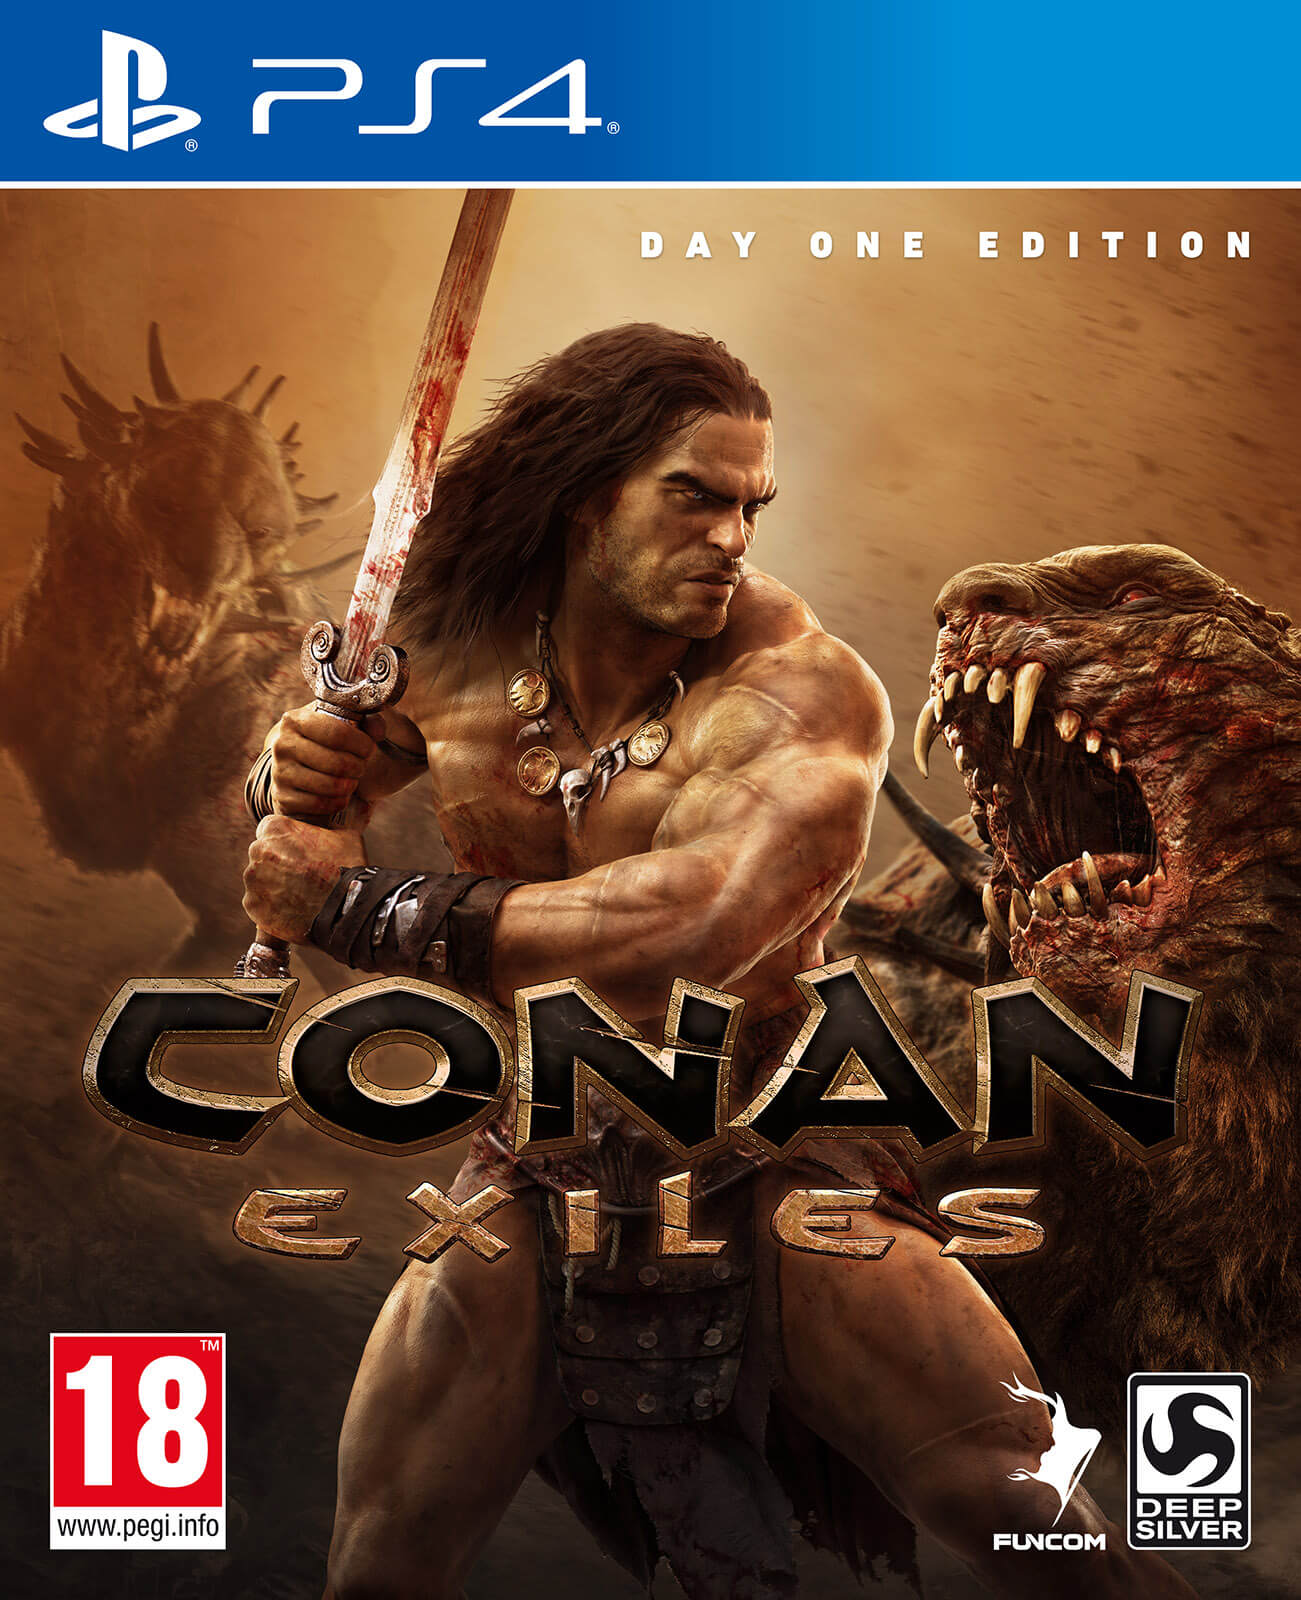 Conan Exiles: Day One Edition